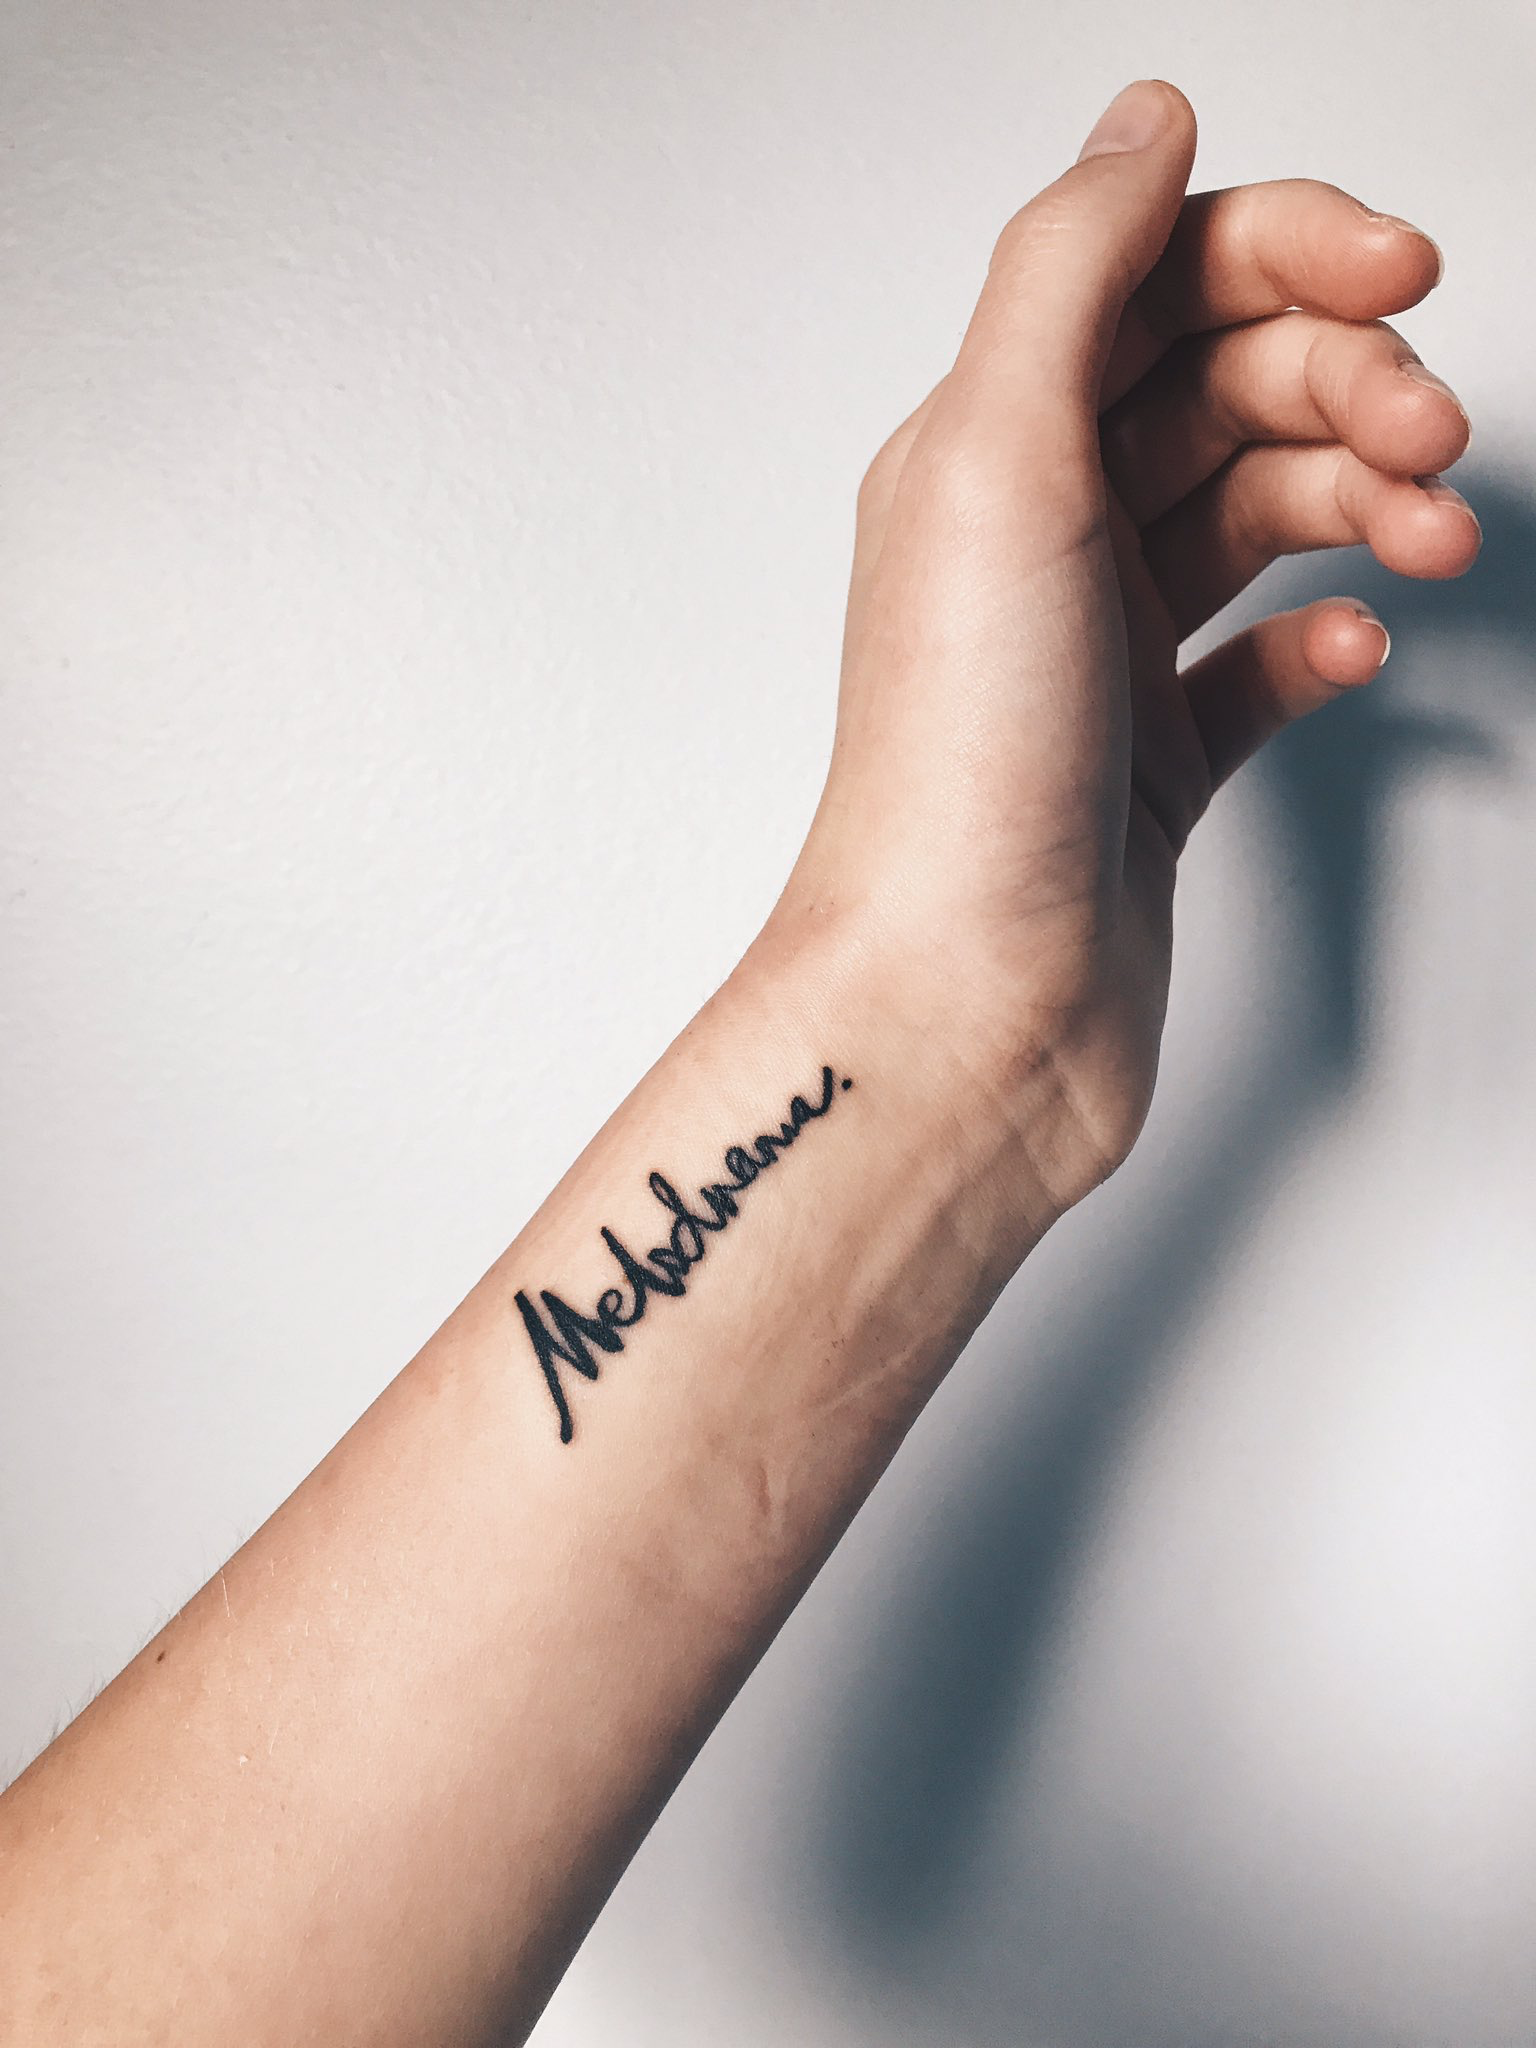 melodrama lorde tattoo wrist tattoo inspo script tat love it pinterest tatuajes. Black Bedroom Furniture Sets. Home Design Ideas